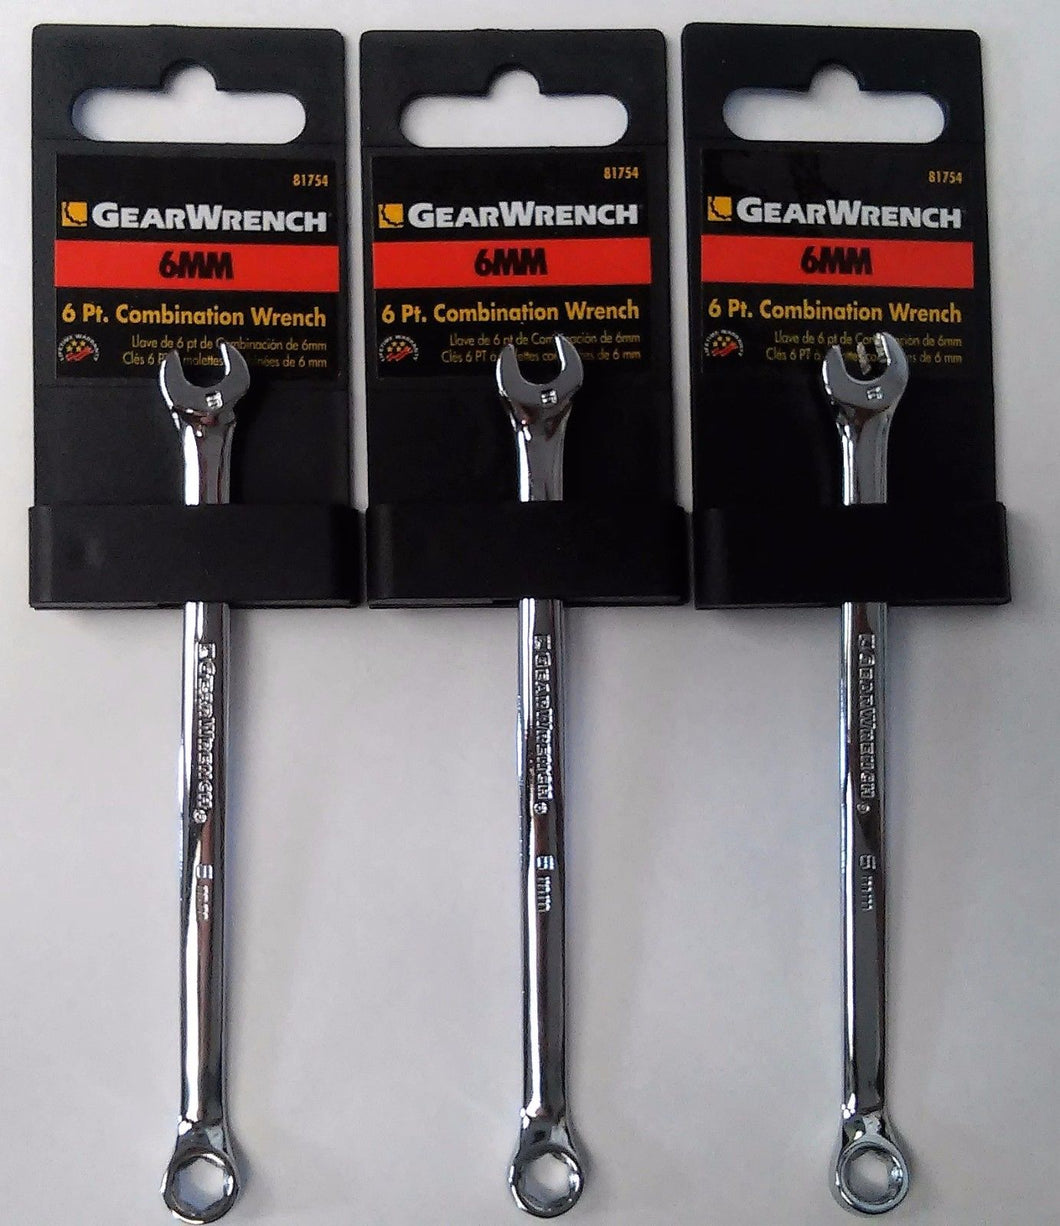 Gearwrench 81754 6mm 6 Point Full Polish Combination Wrench (3pcs)